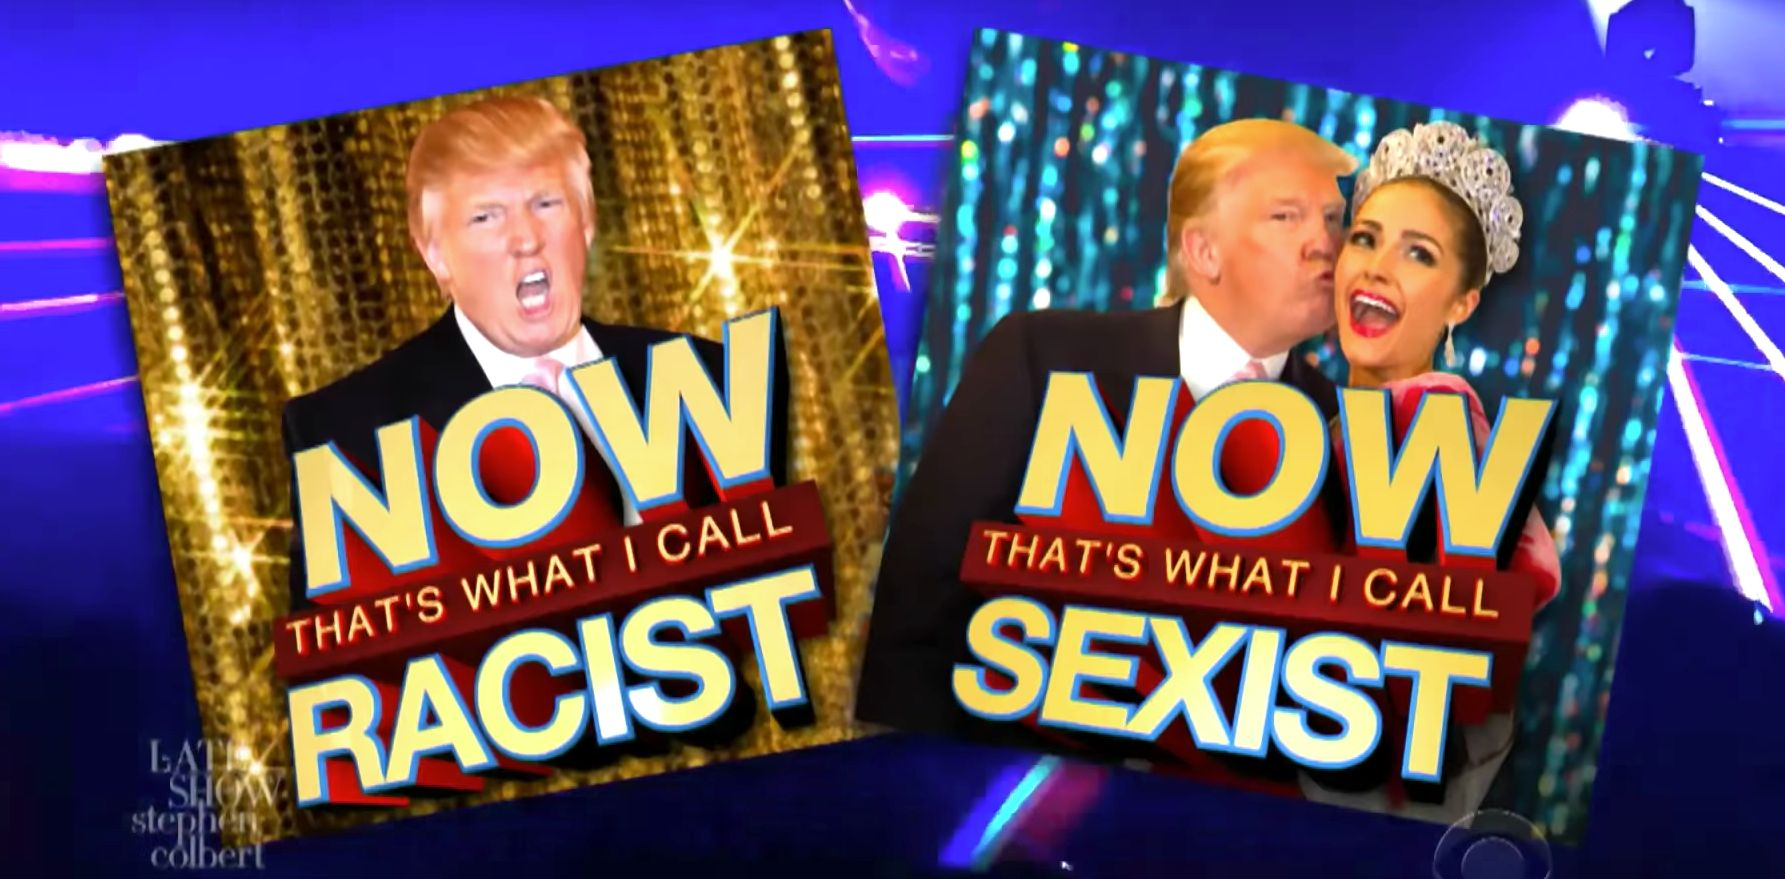 Stephen Colbert Trolls Trump With 'NOW That's What I Call Racist' EDM